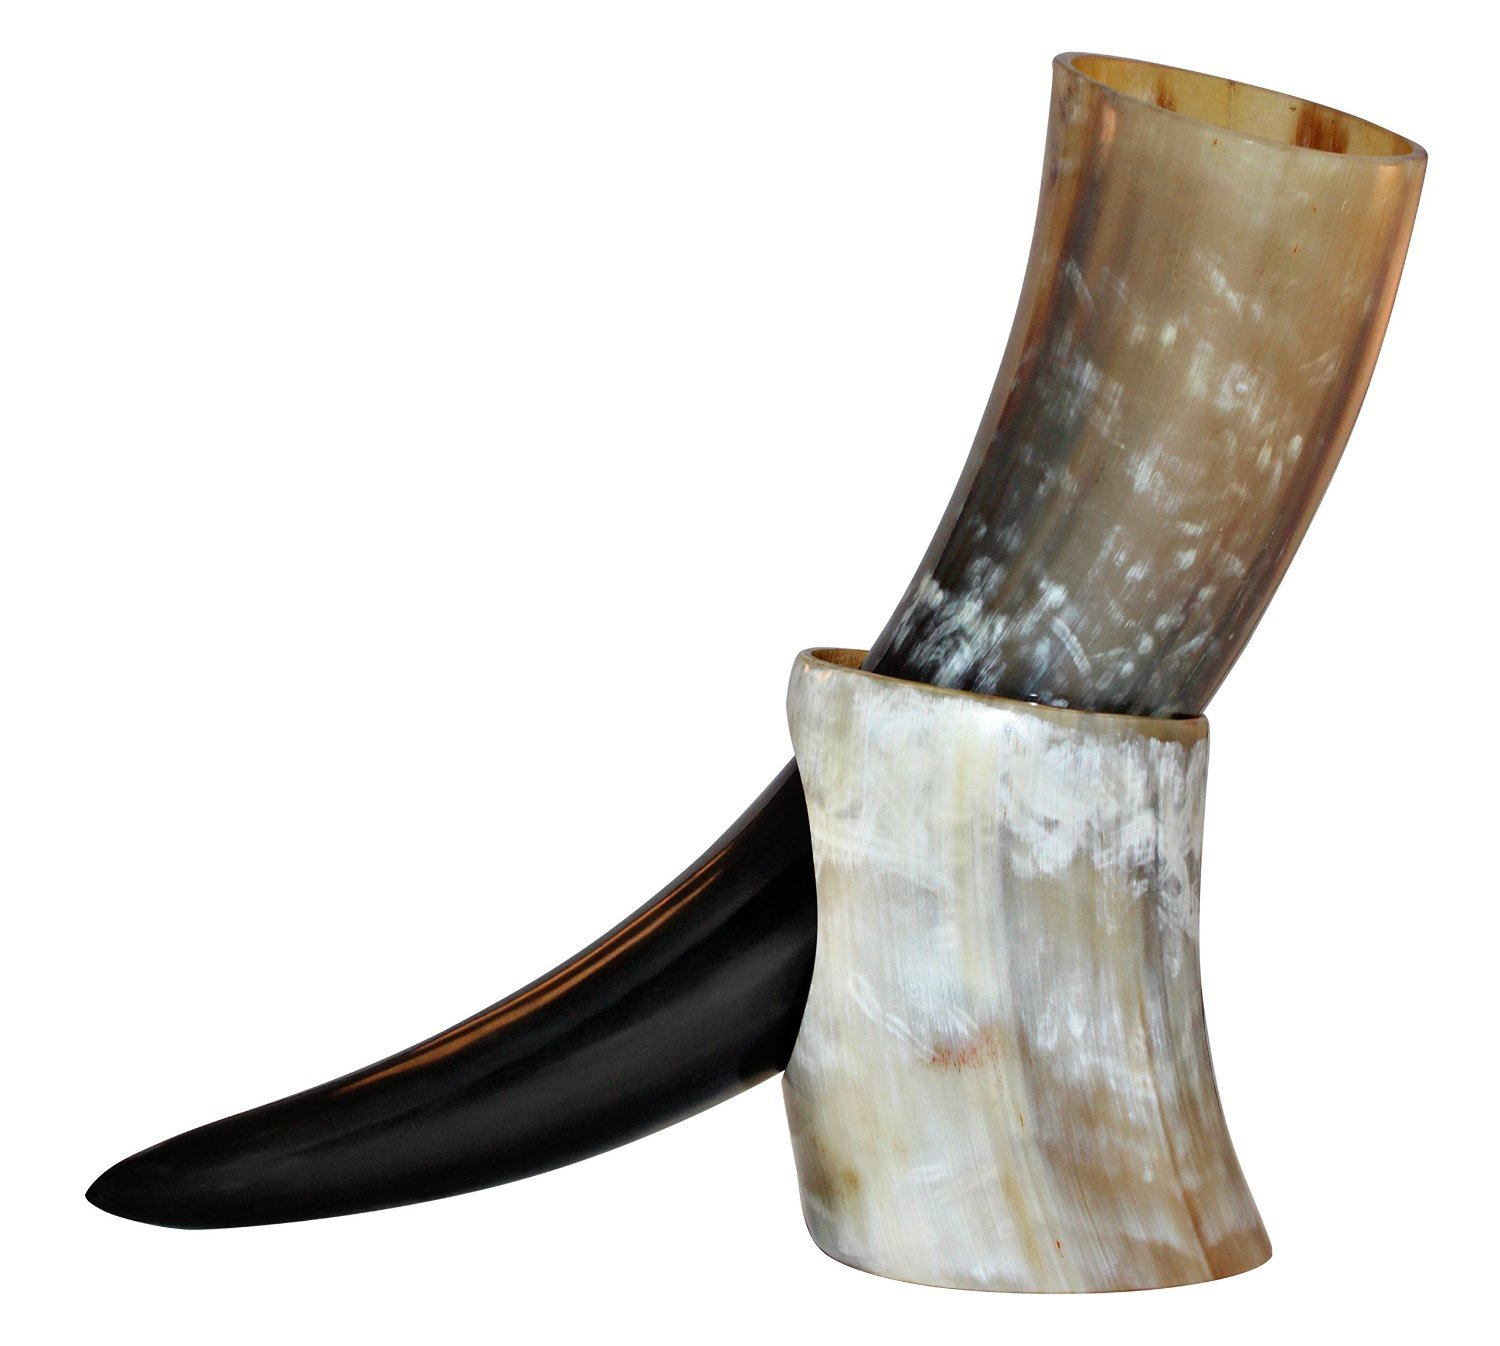 Viking Cup Drinking Horn Tankard Authentic Medieval Inspired drinking horn with stand